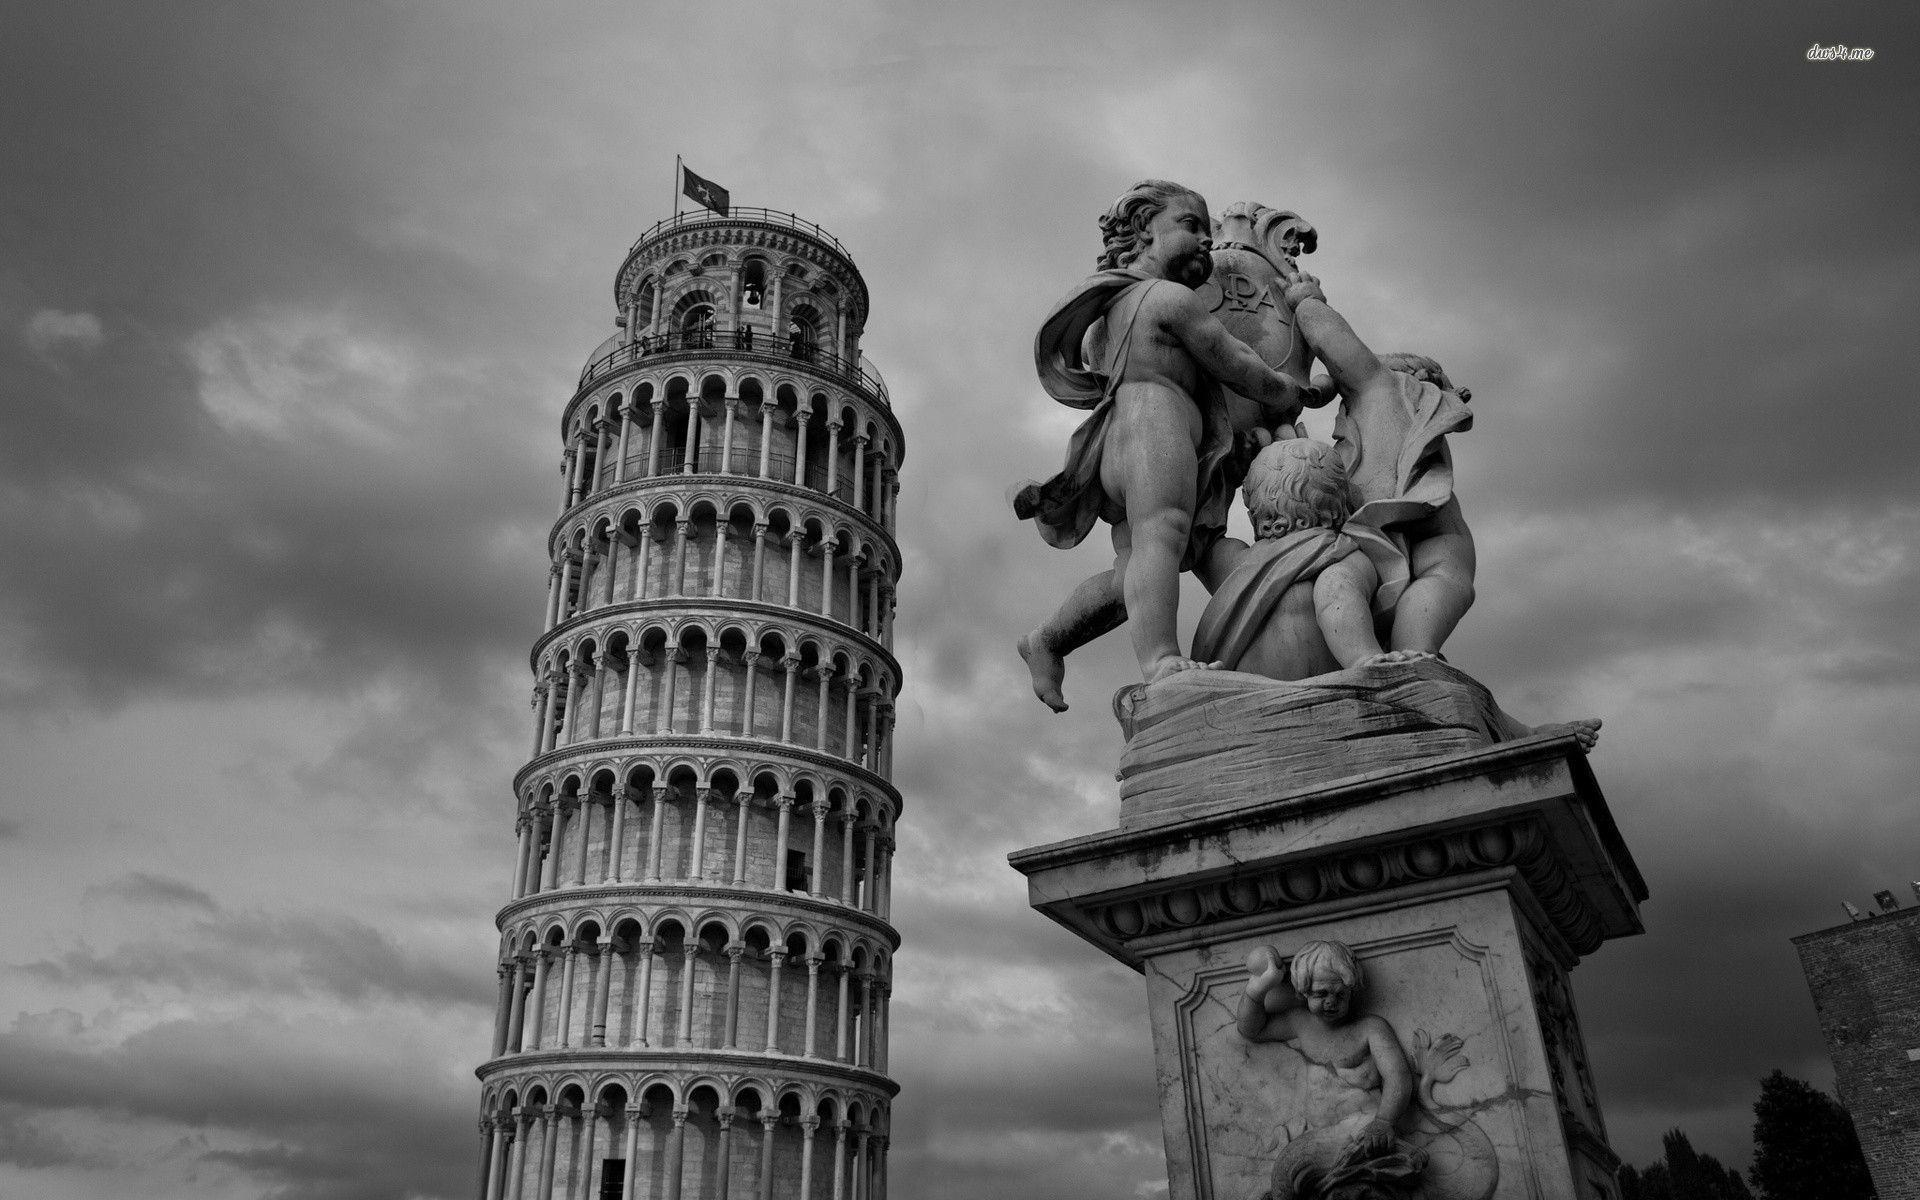 Leaning Tower of Pisa wallpaper - World wallpapers - #